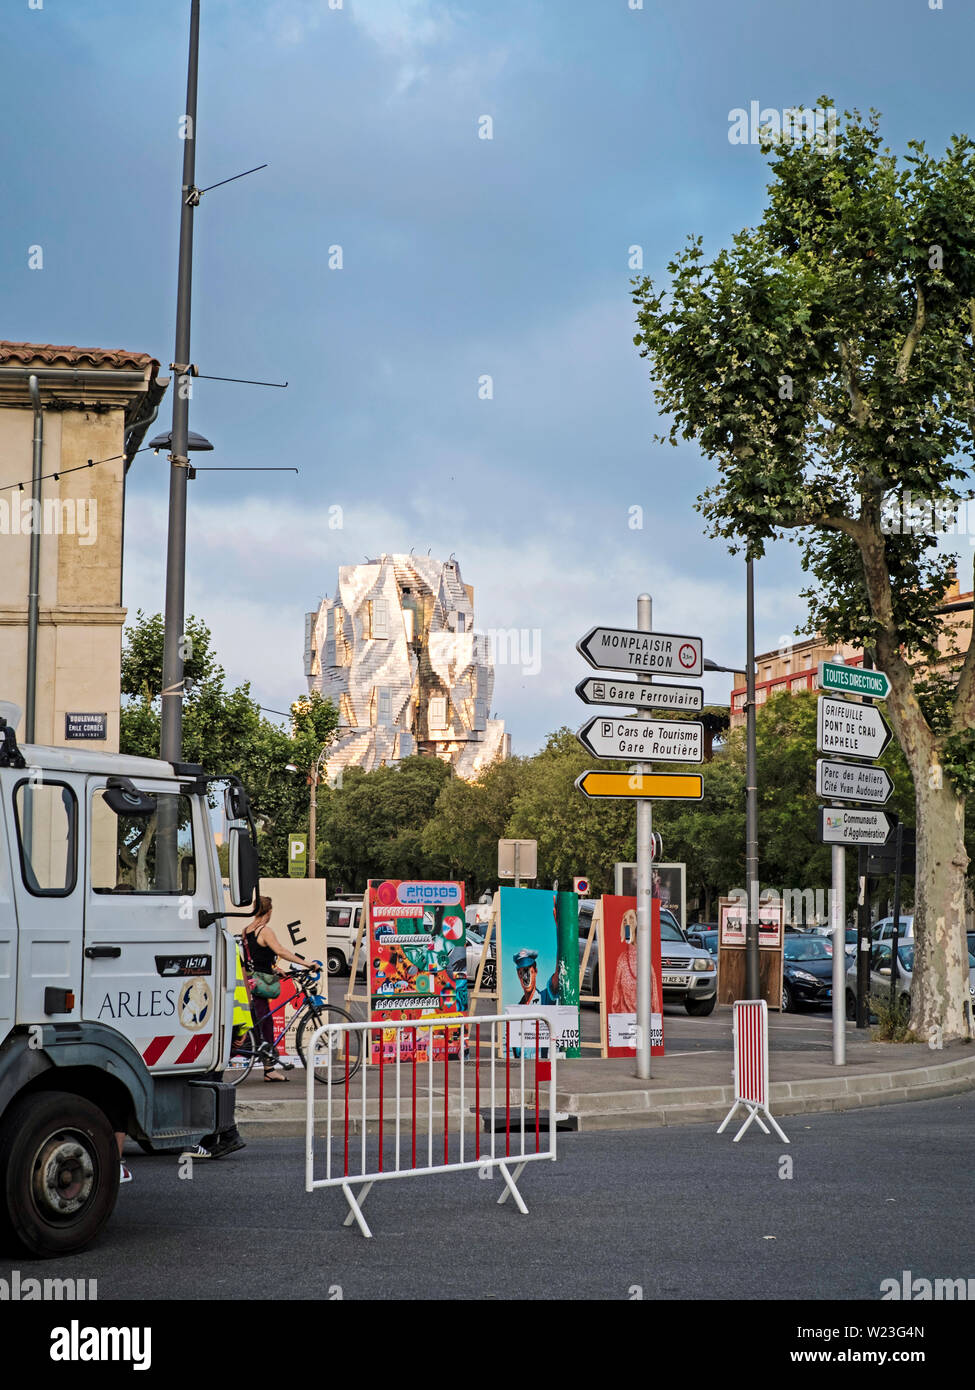 LUMA Arles building by Frank Gehry, June 2019, seen from Boulevard